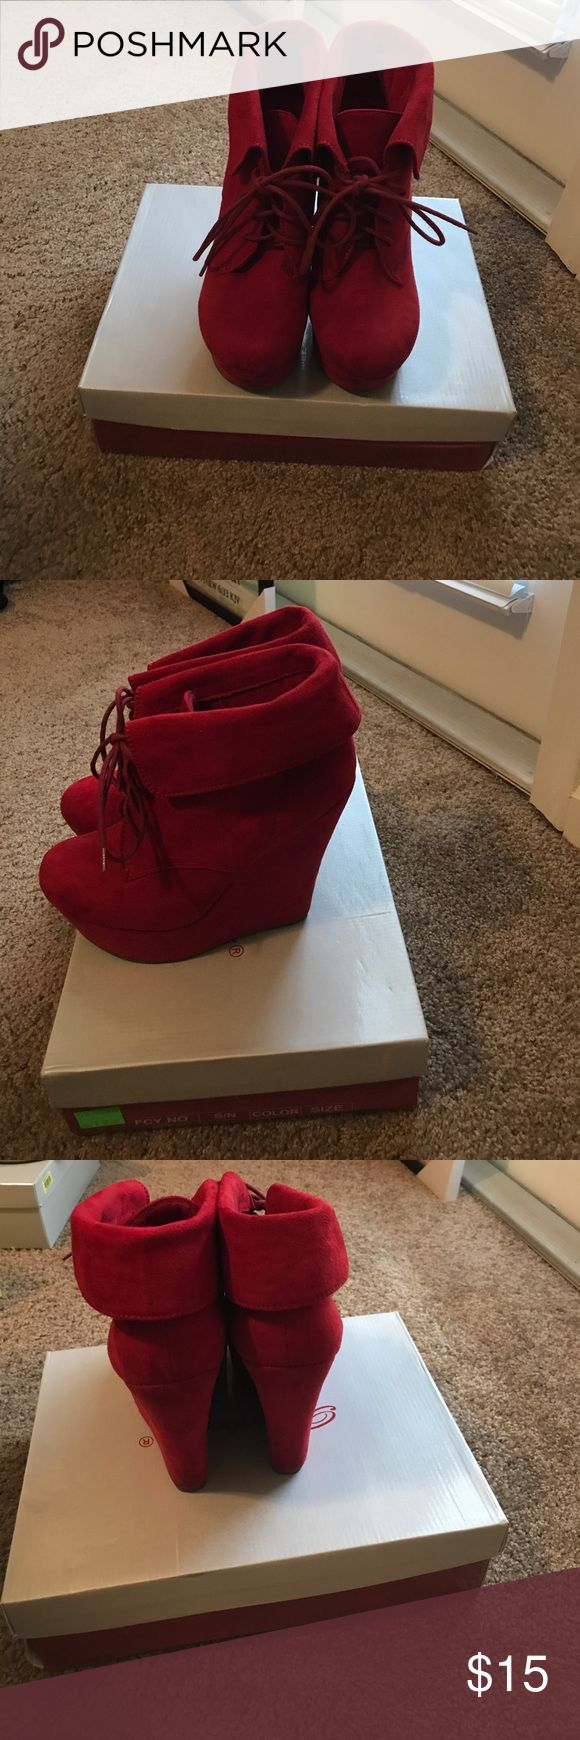 Red wedges. Size 8 1/2. Worn twice Red wedges Shoes Wedges